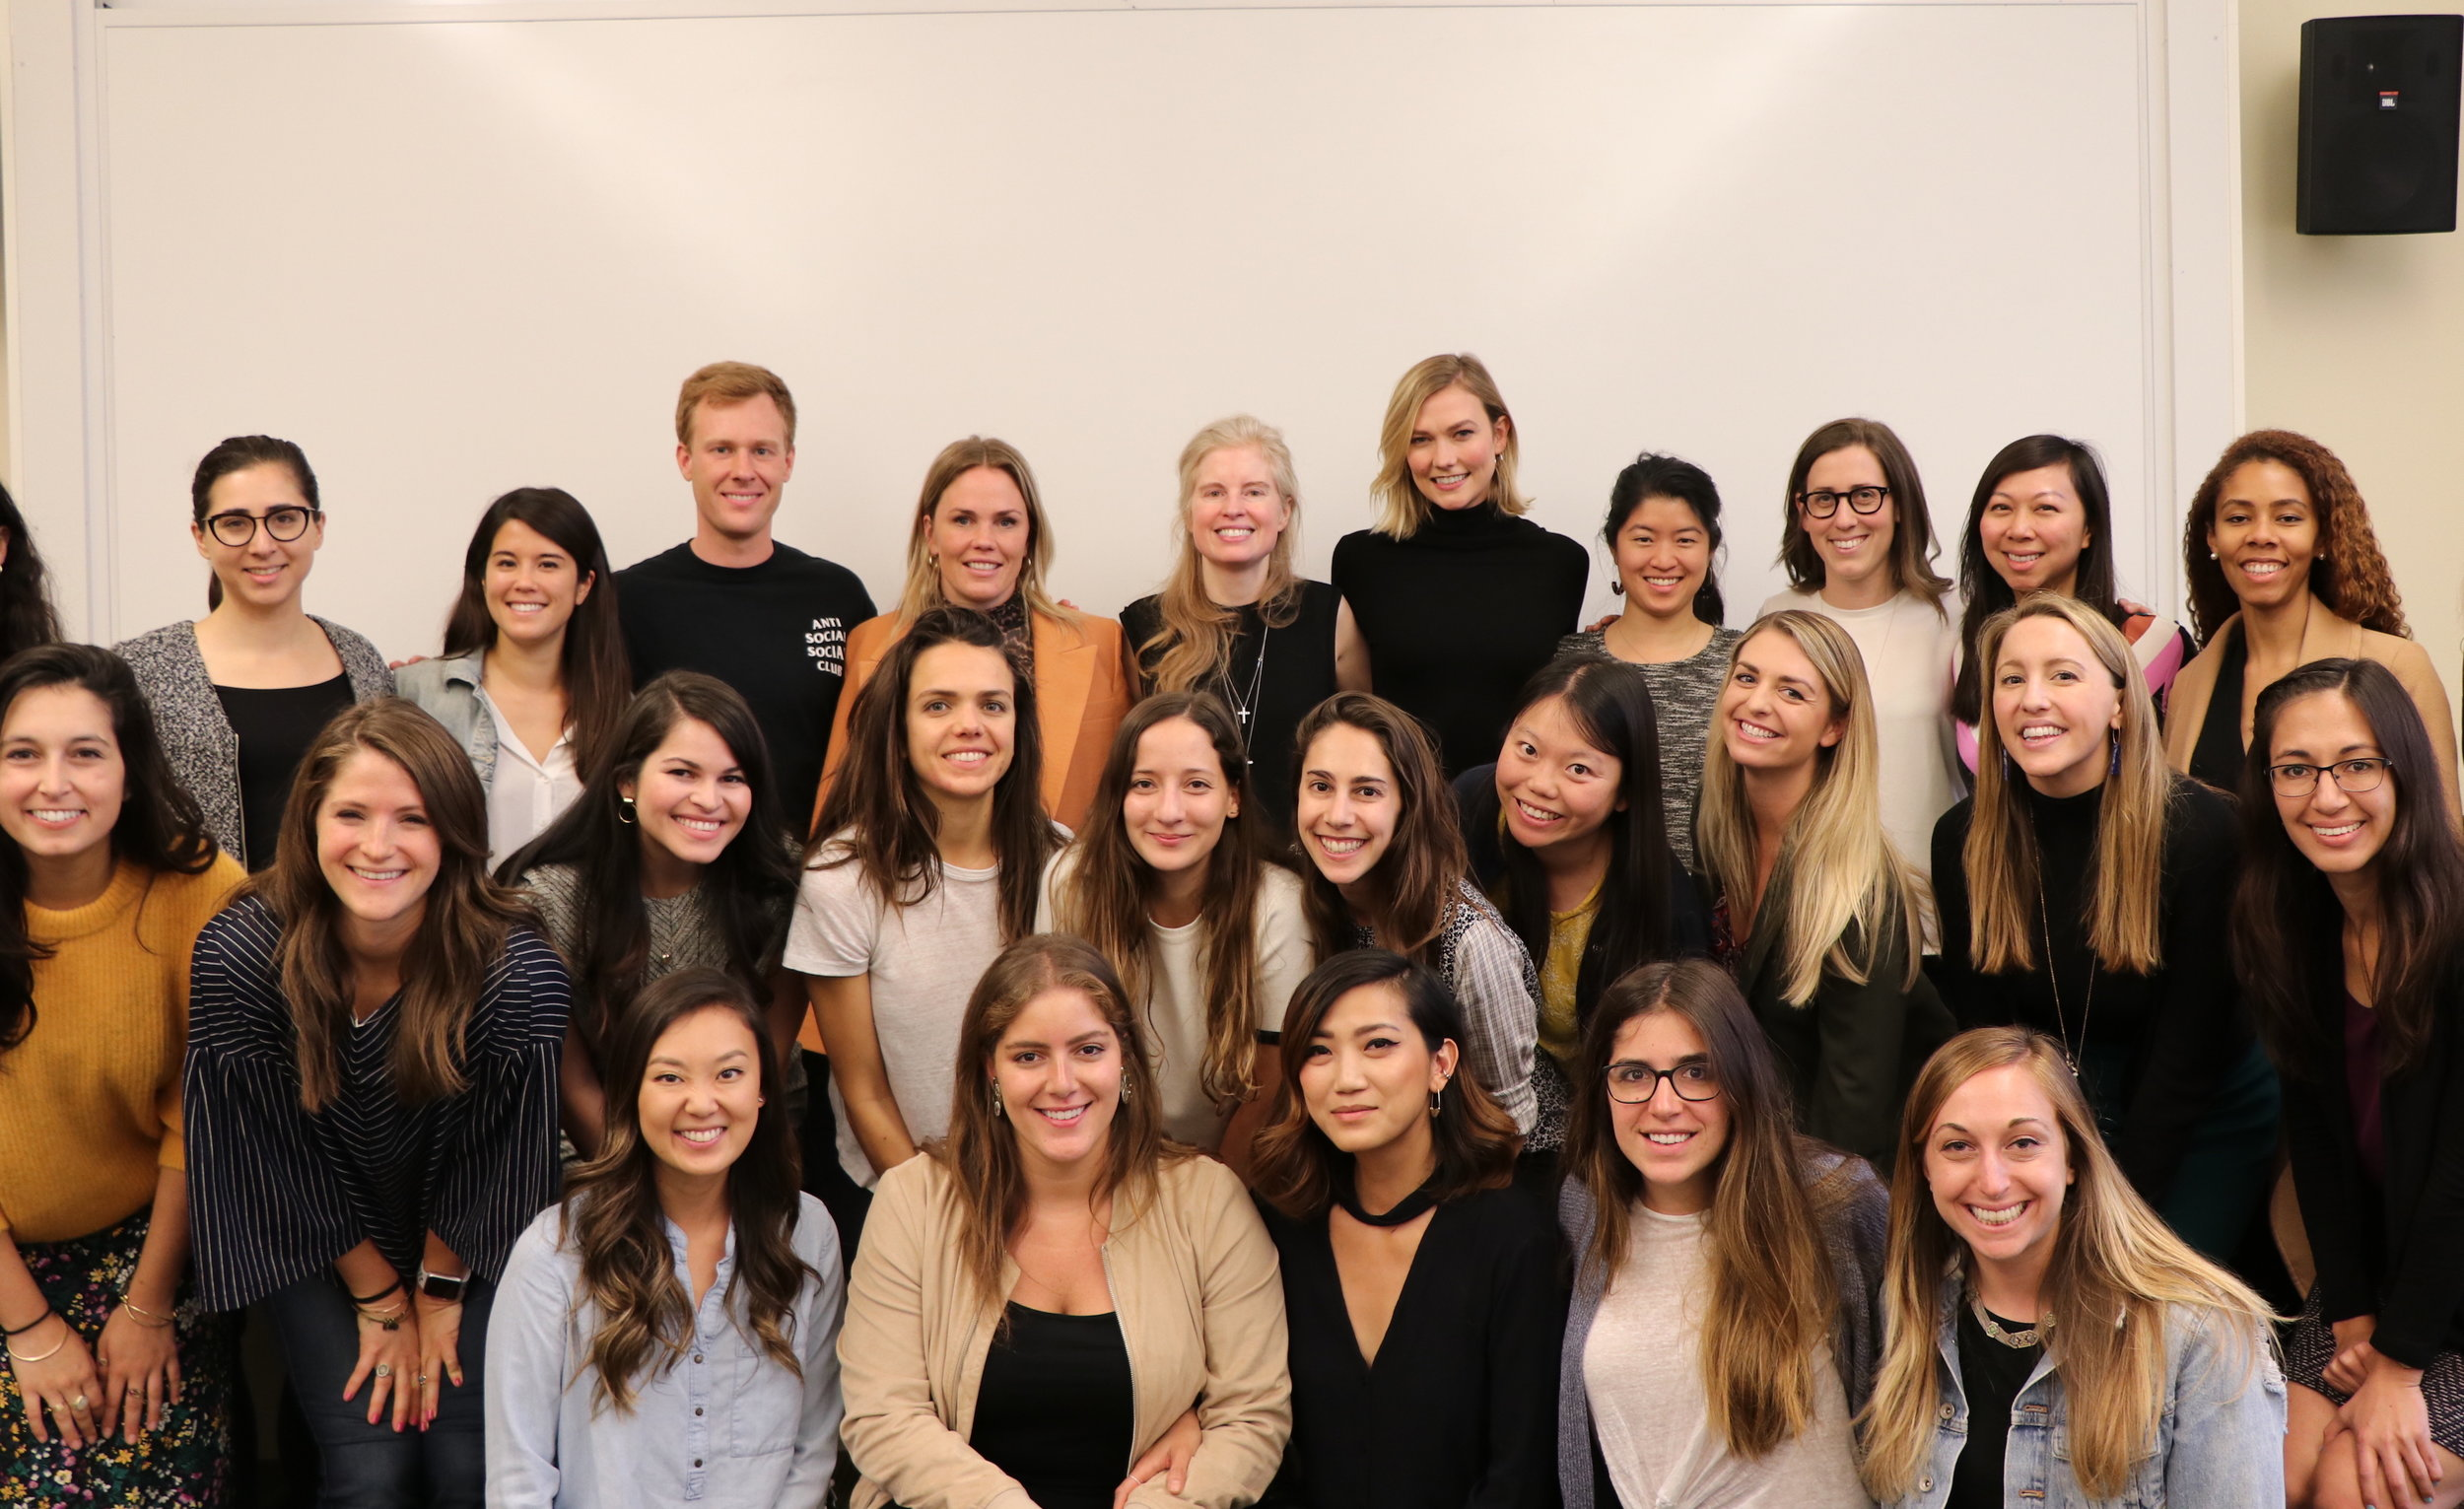 Karlie Kloss and Penni Thow with Laura Arrillaga-Andreessen and her Power of You: Women in Leadership students